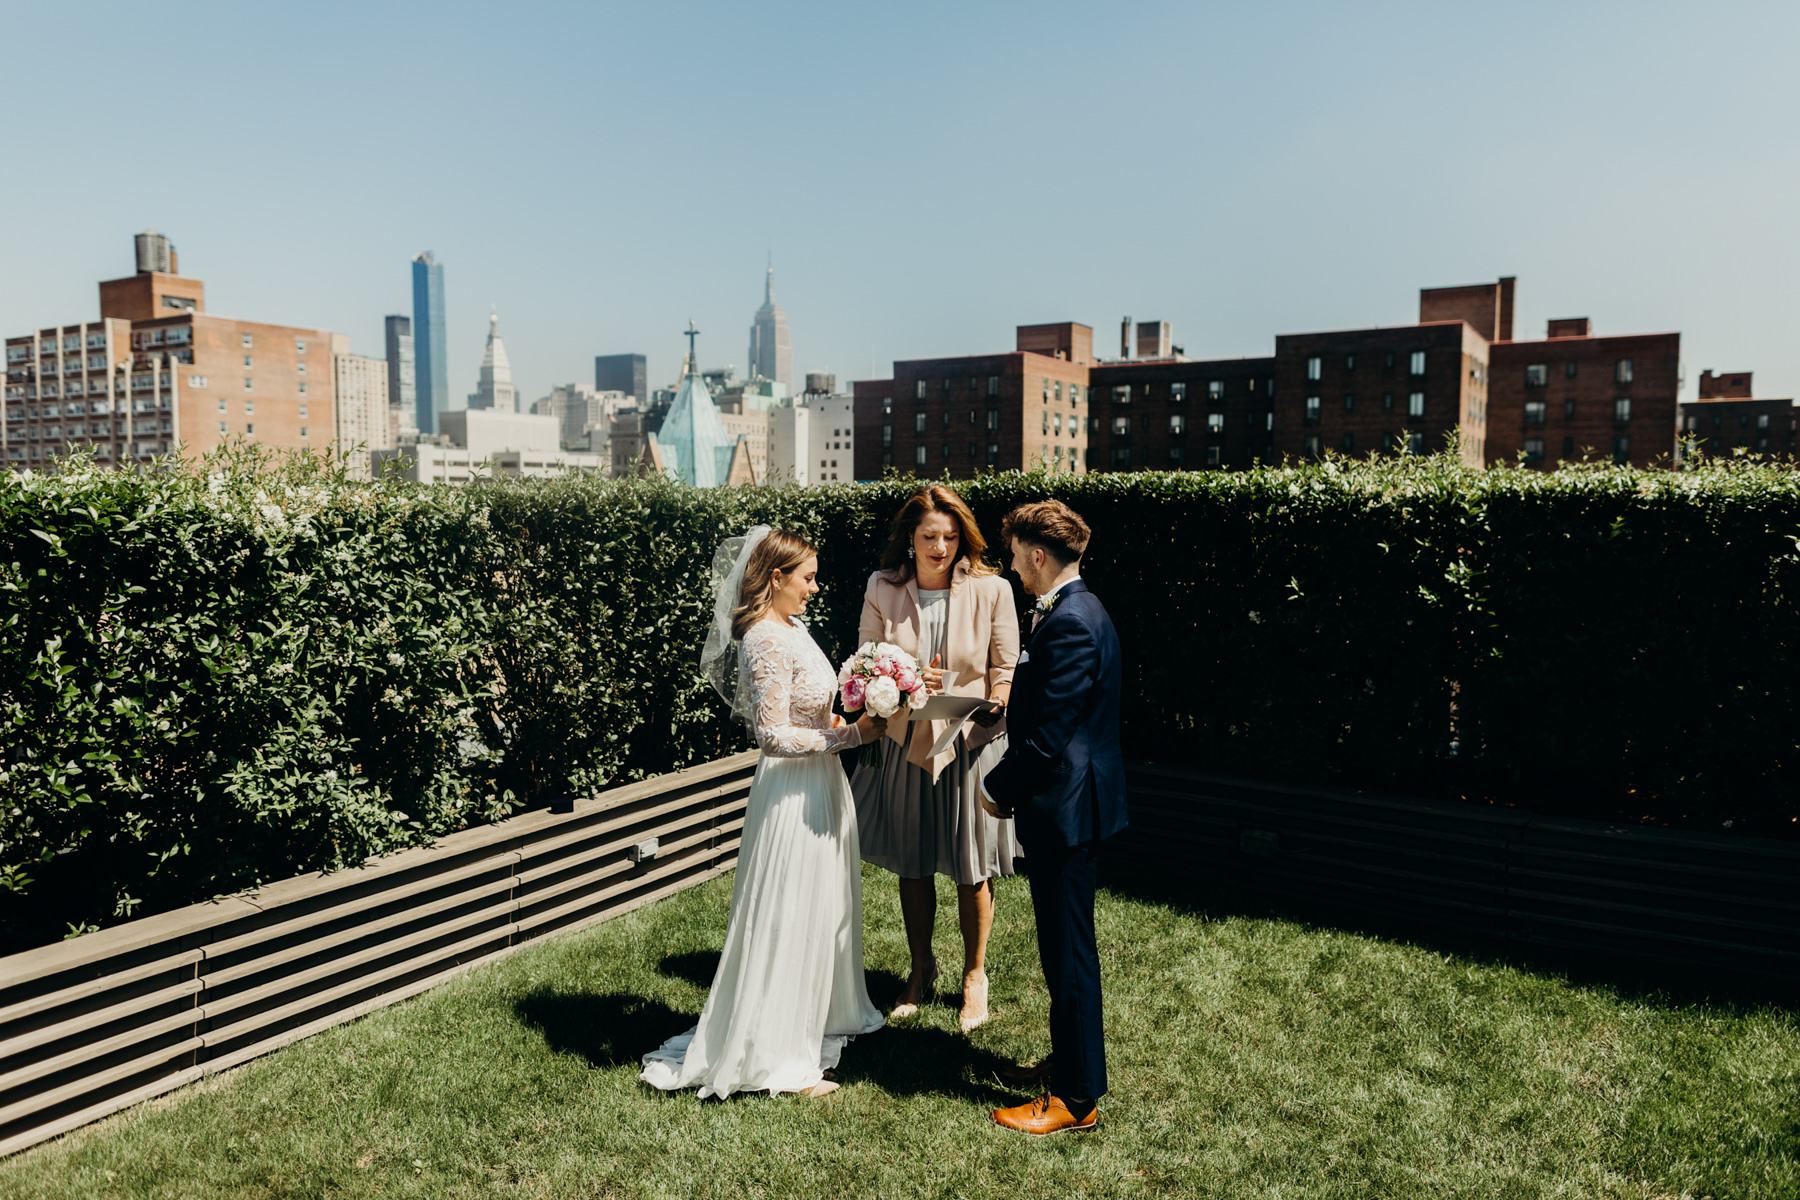 Rooftop ceremony in Manhattan